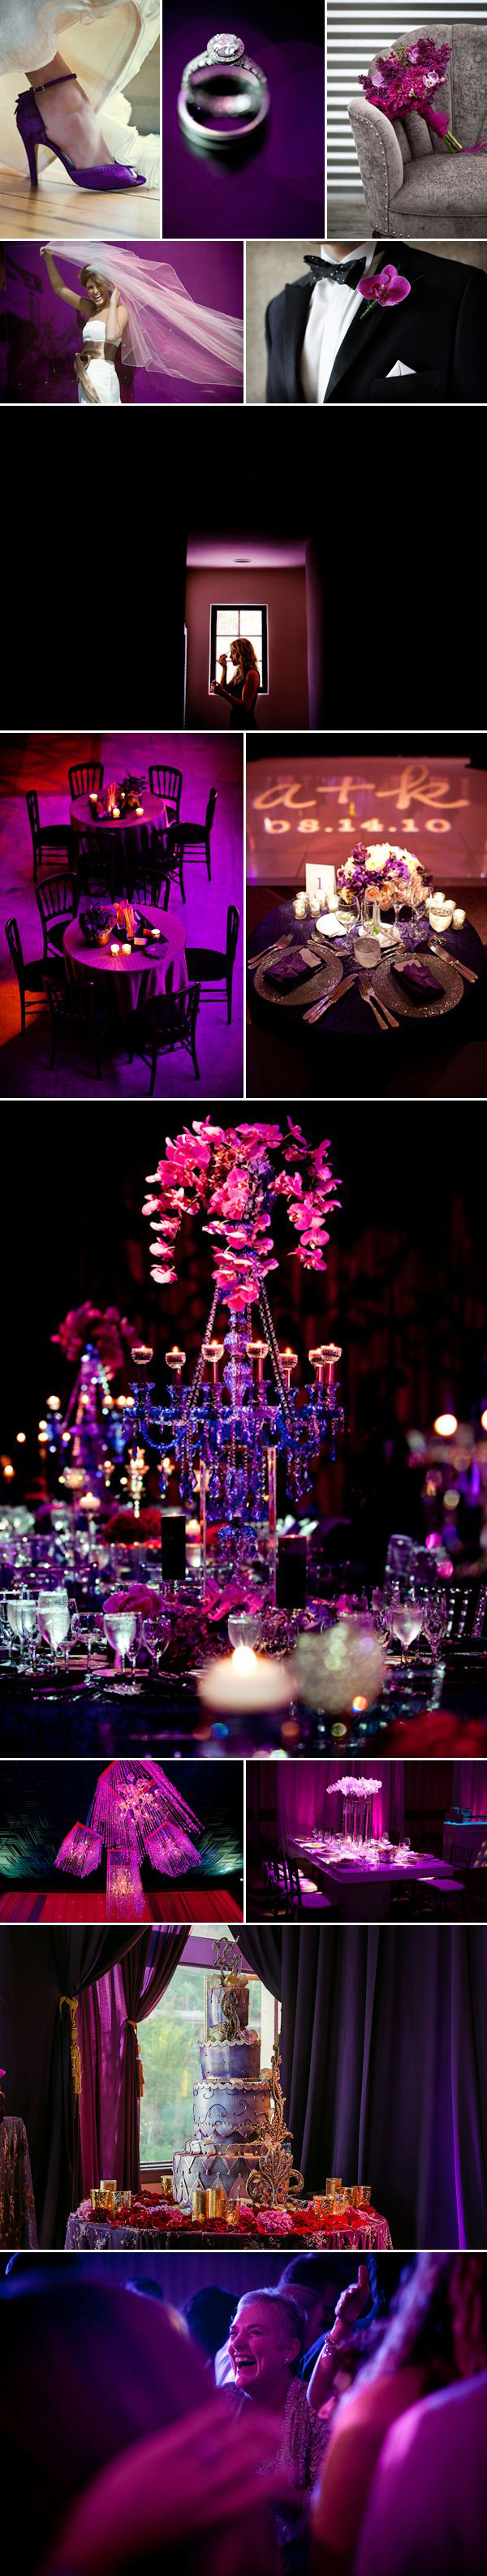 radiant orchid color palette inspiration board | via junebugweddings.com